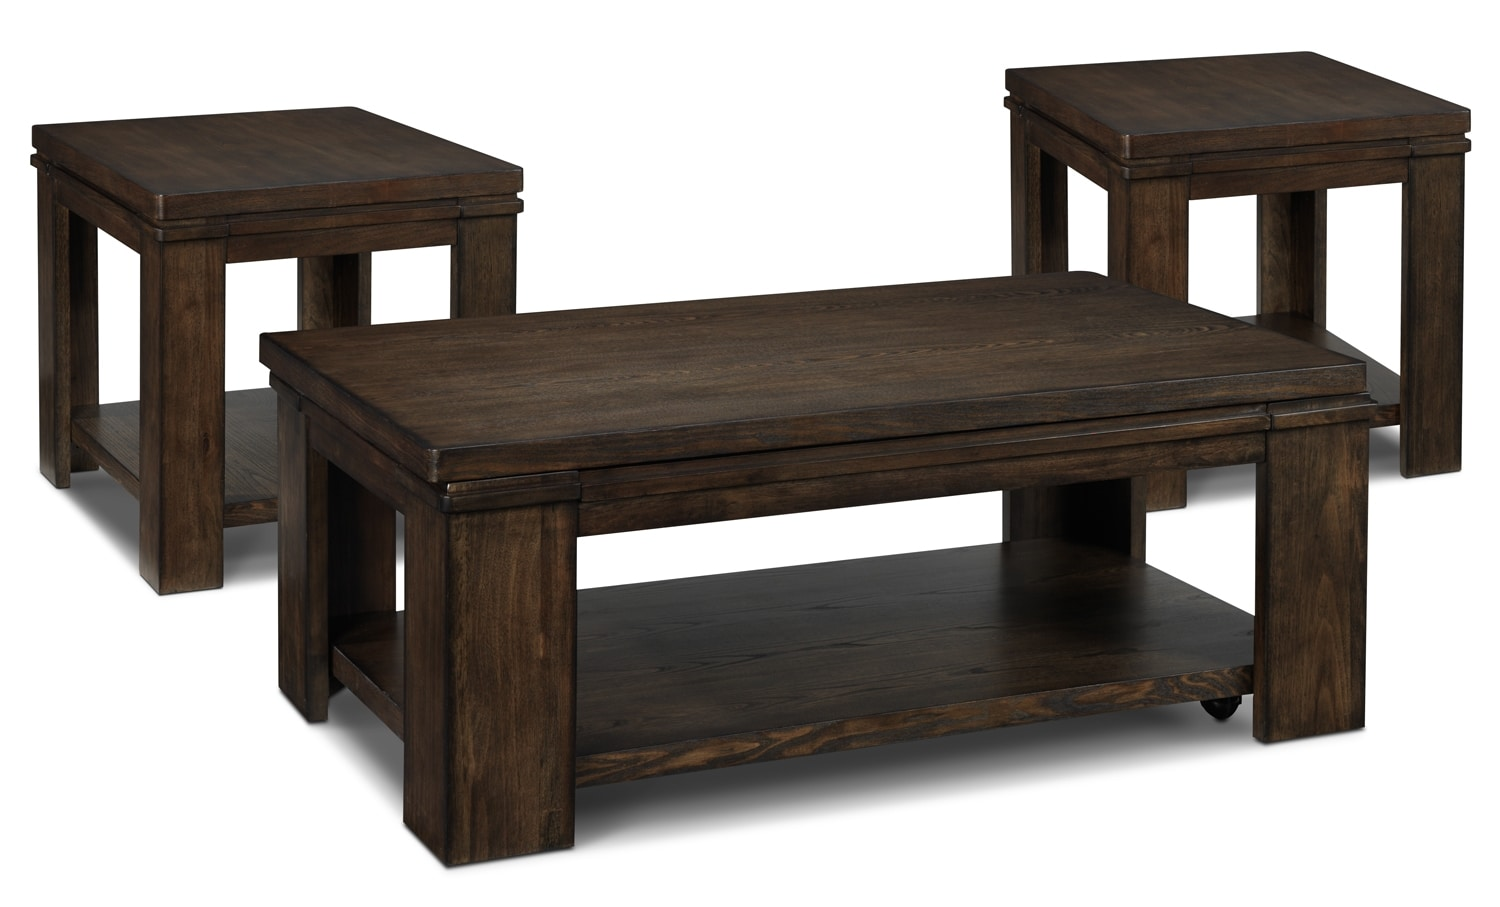 Accent and Occasional Furniture - Harbridge 3-Piece Table Set - Nutmeg